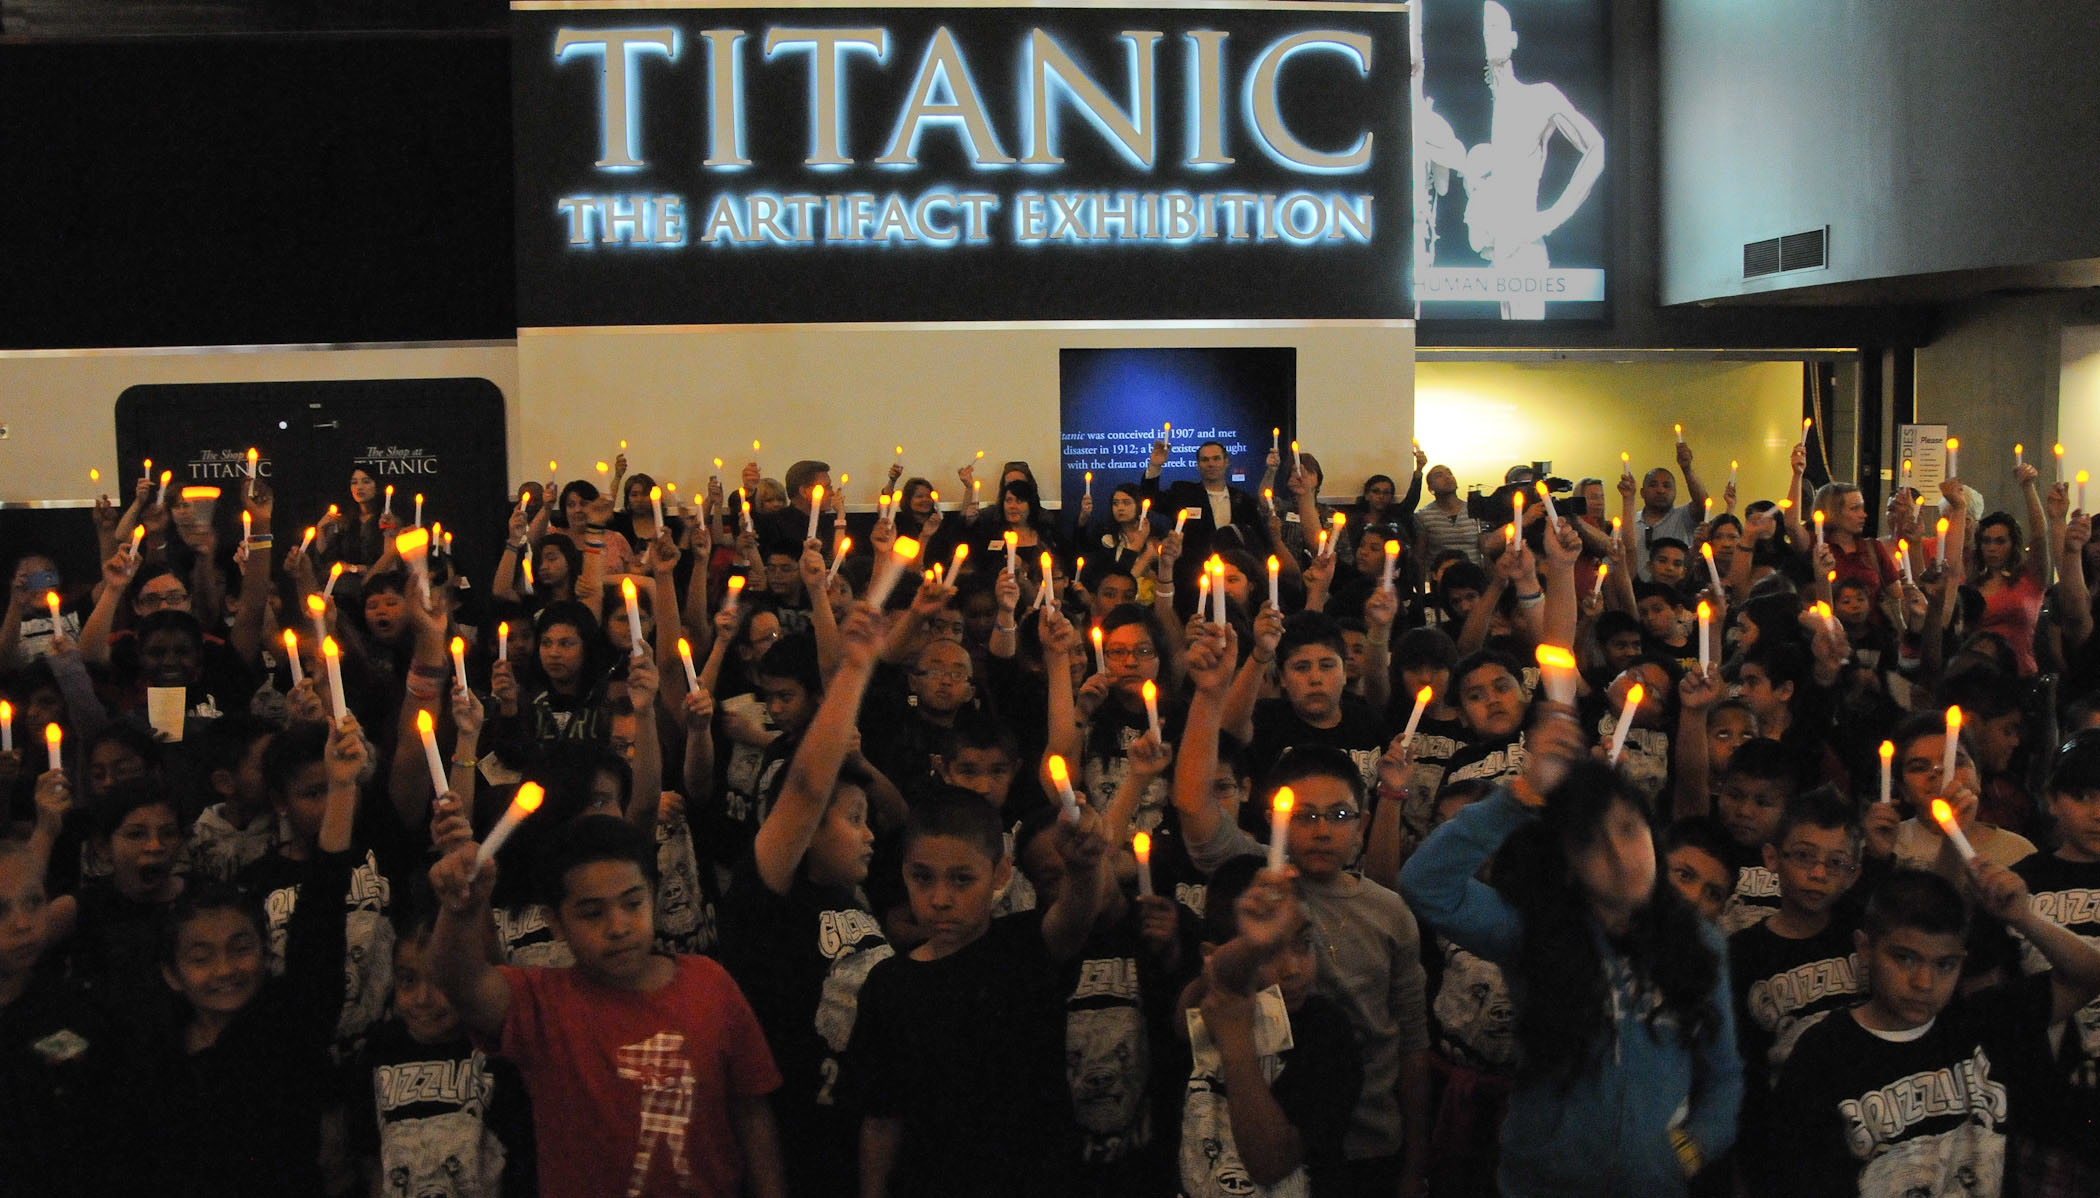 Titanic: The Artifact Exhibition commemorates the Centennial of RMS Titanic with Griffith Elementary School